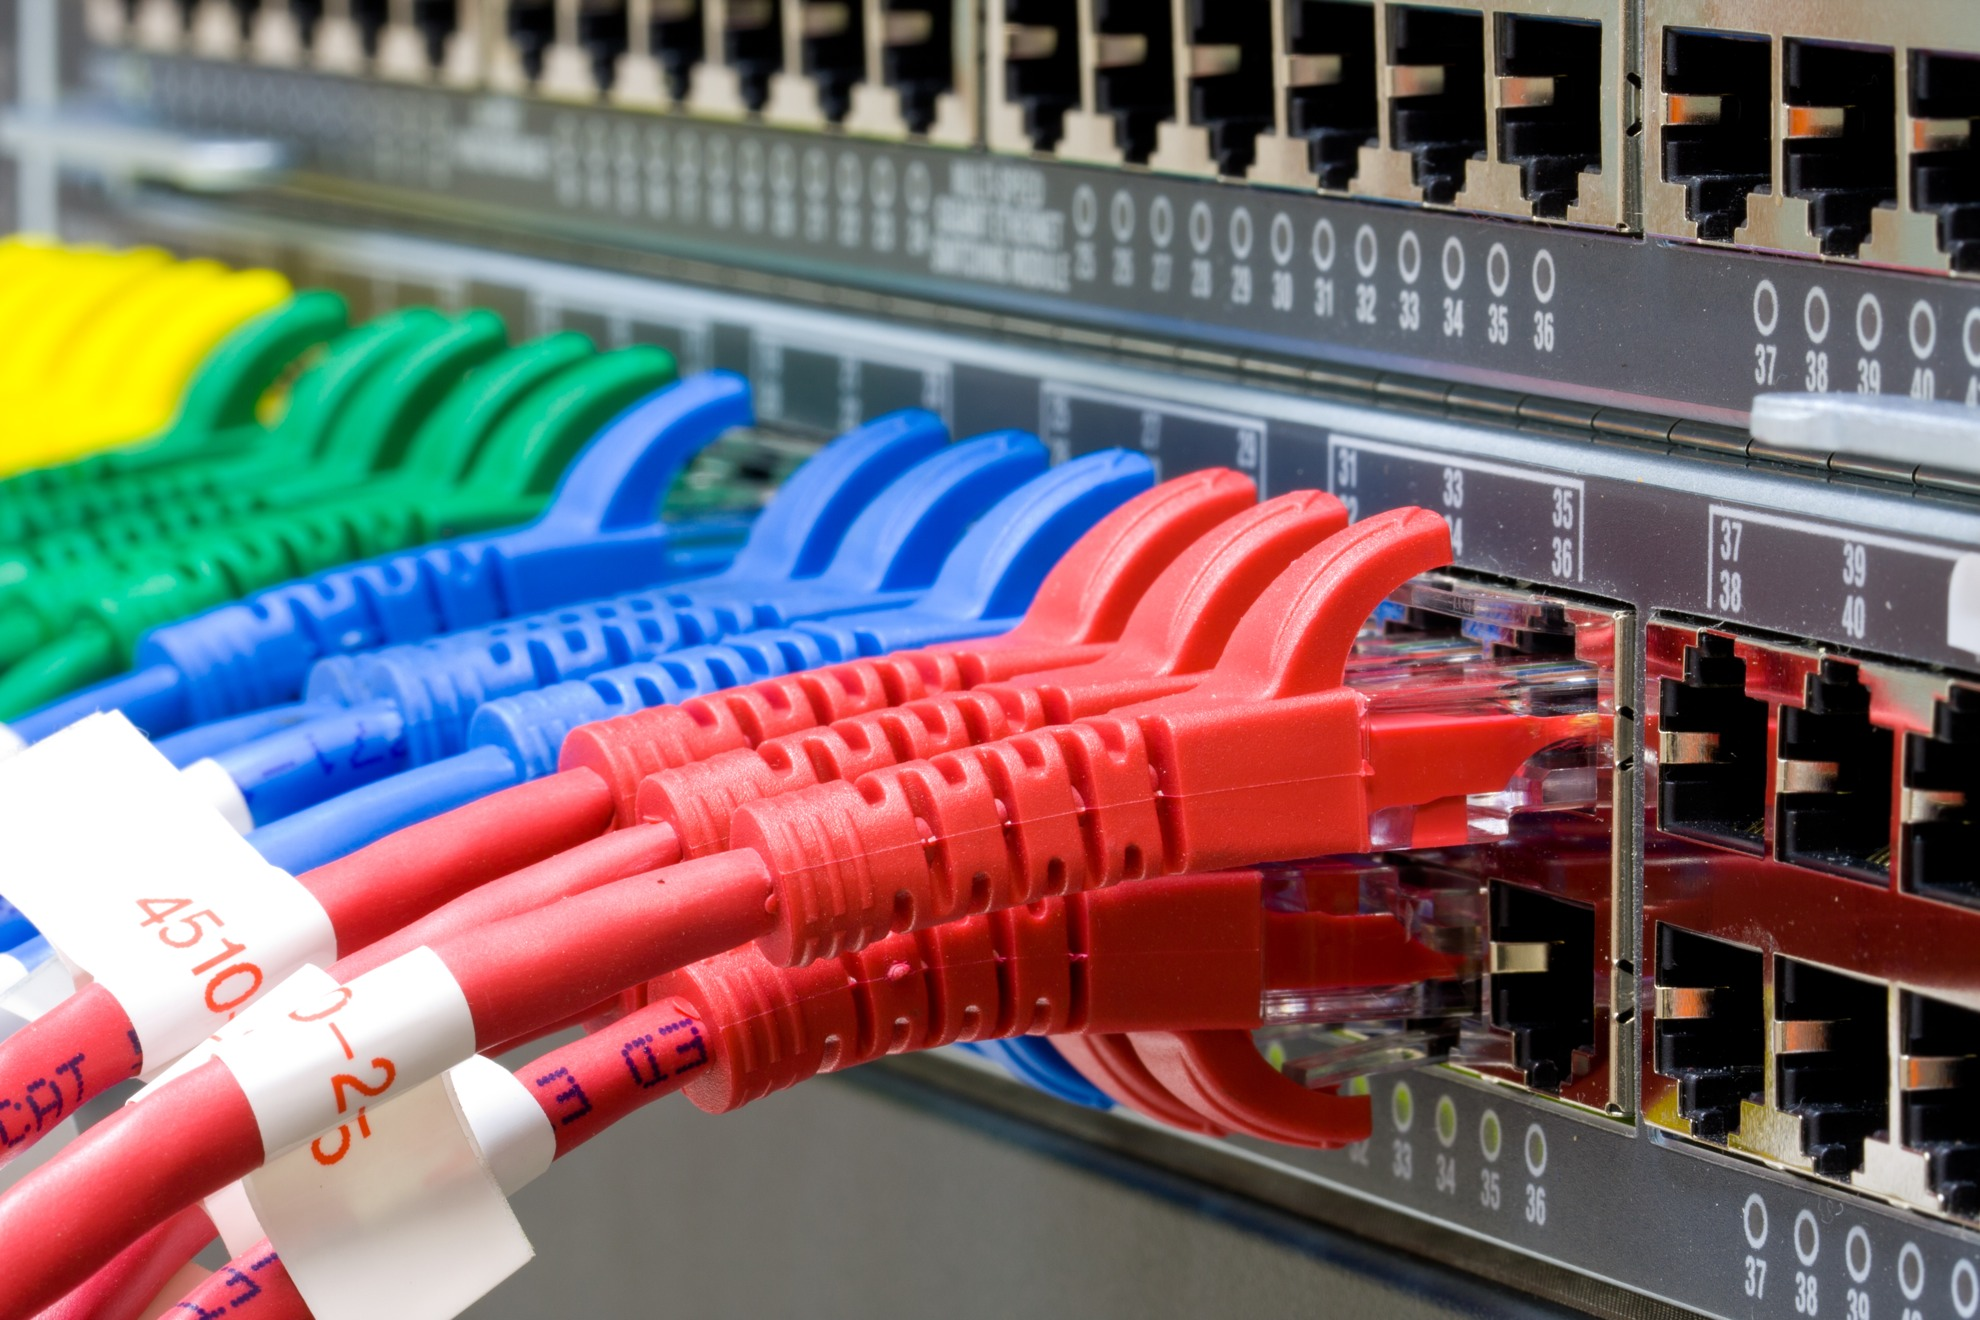 http://sos.cr/wp-content/uploads/2018/10/Structured-Cabling.jpg